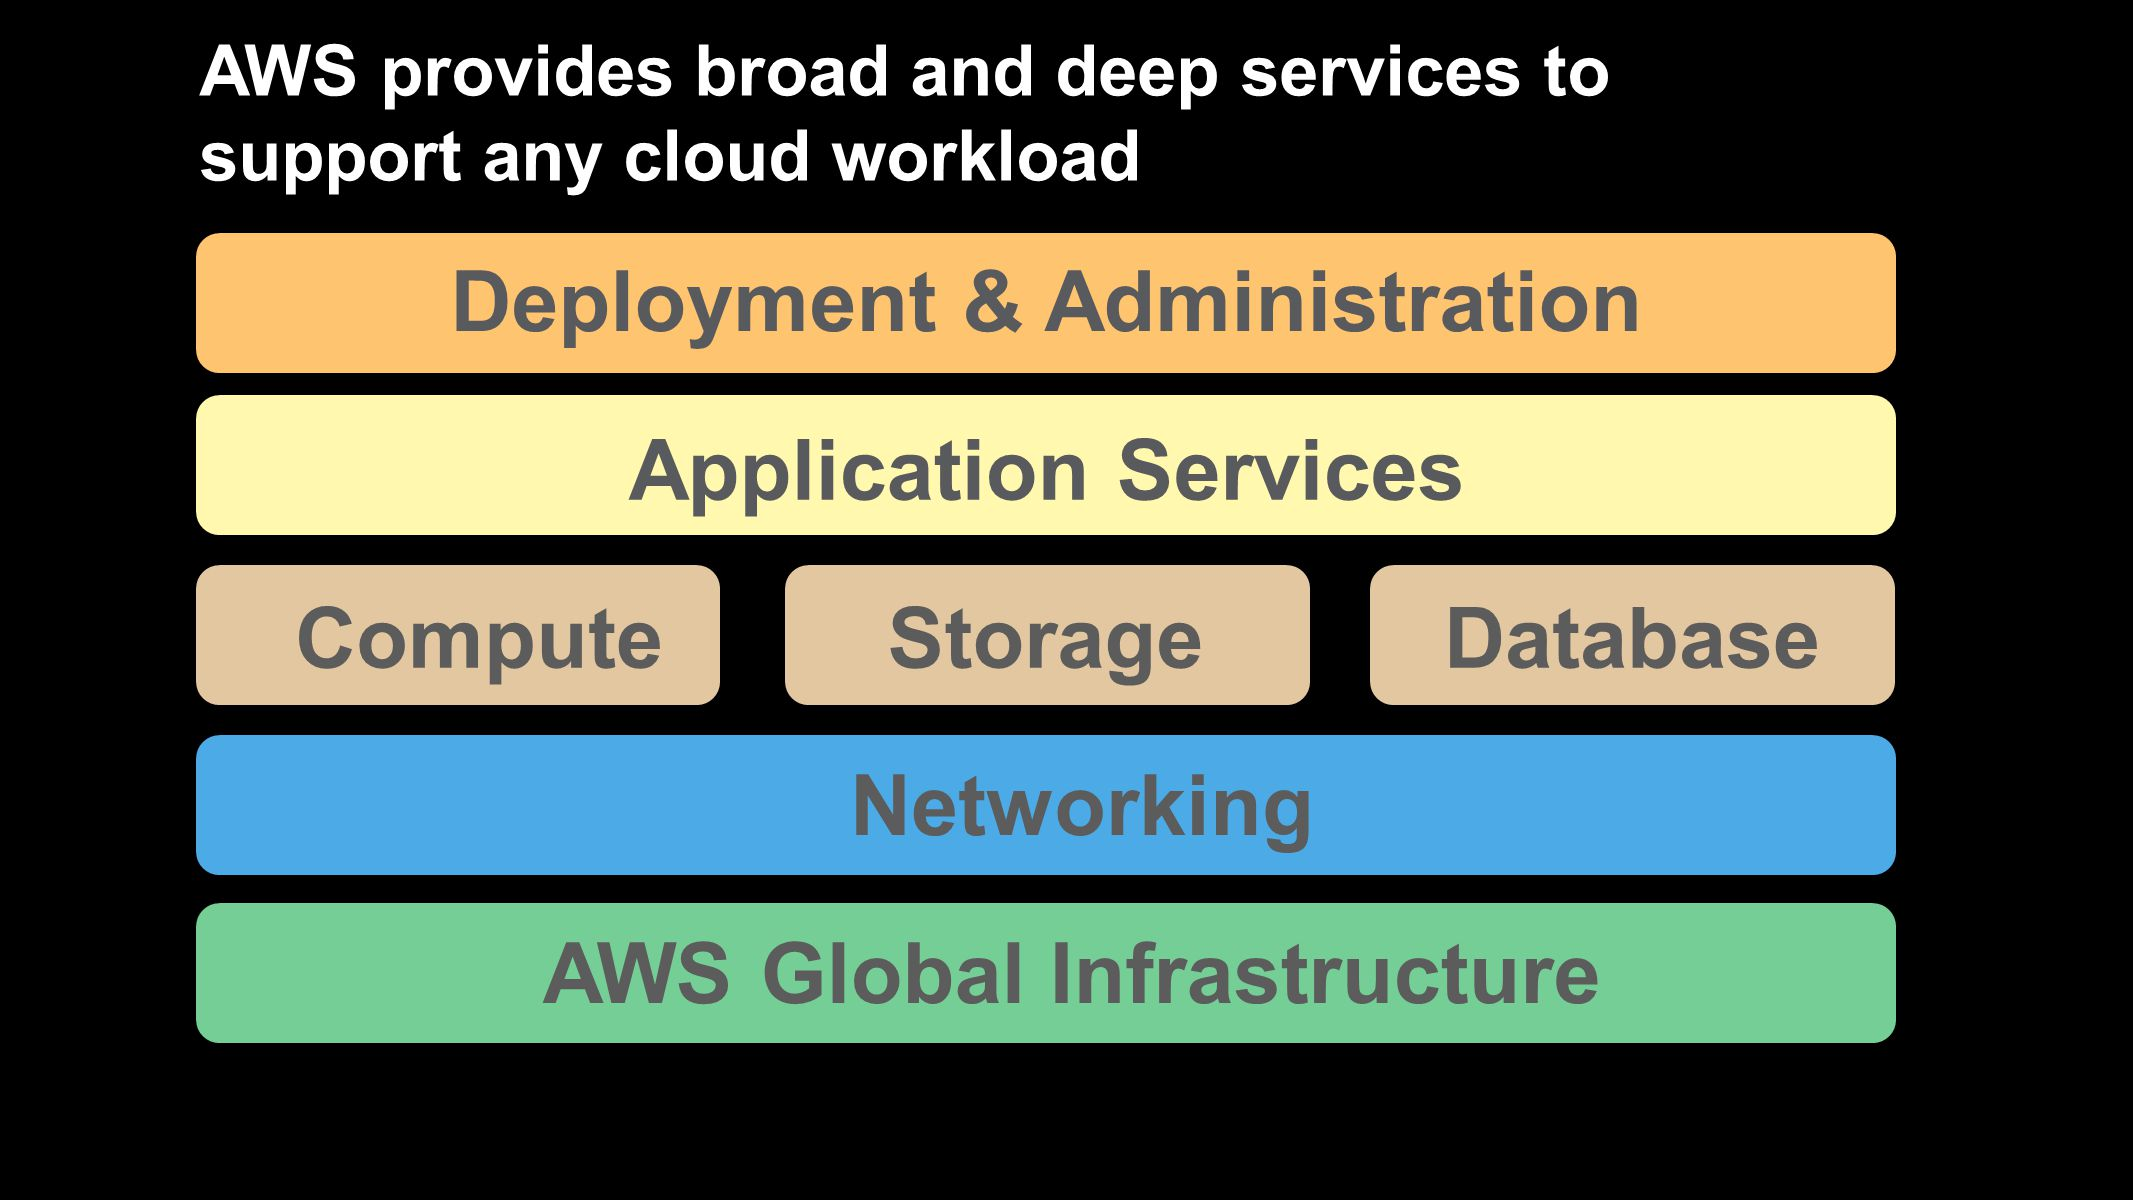 AWS provides broad and deep services to support any cloud workload AWS Global Infrastructure Application Services Networking Deployment & Administration DatabaseStorageCompute